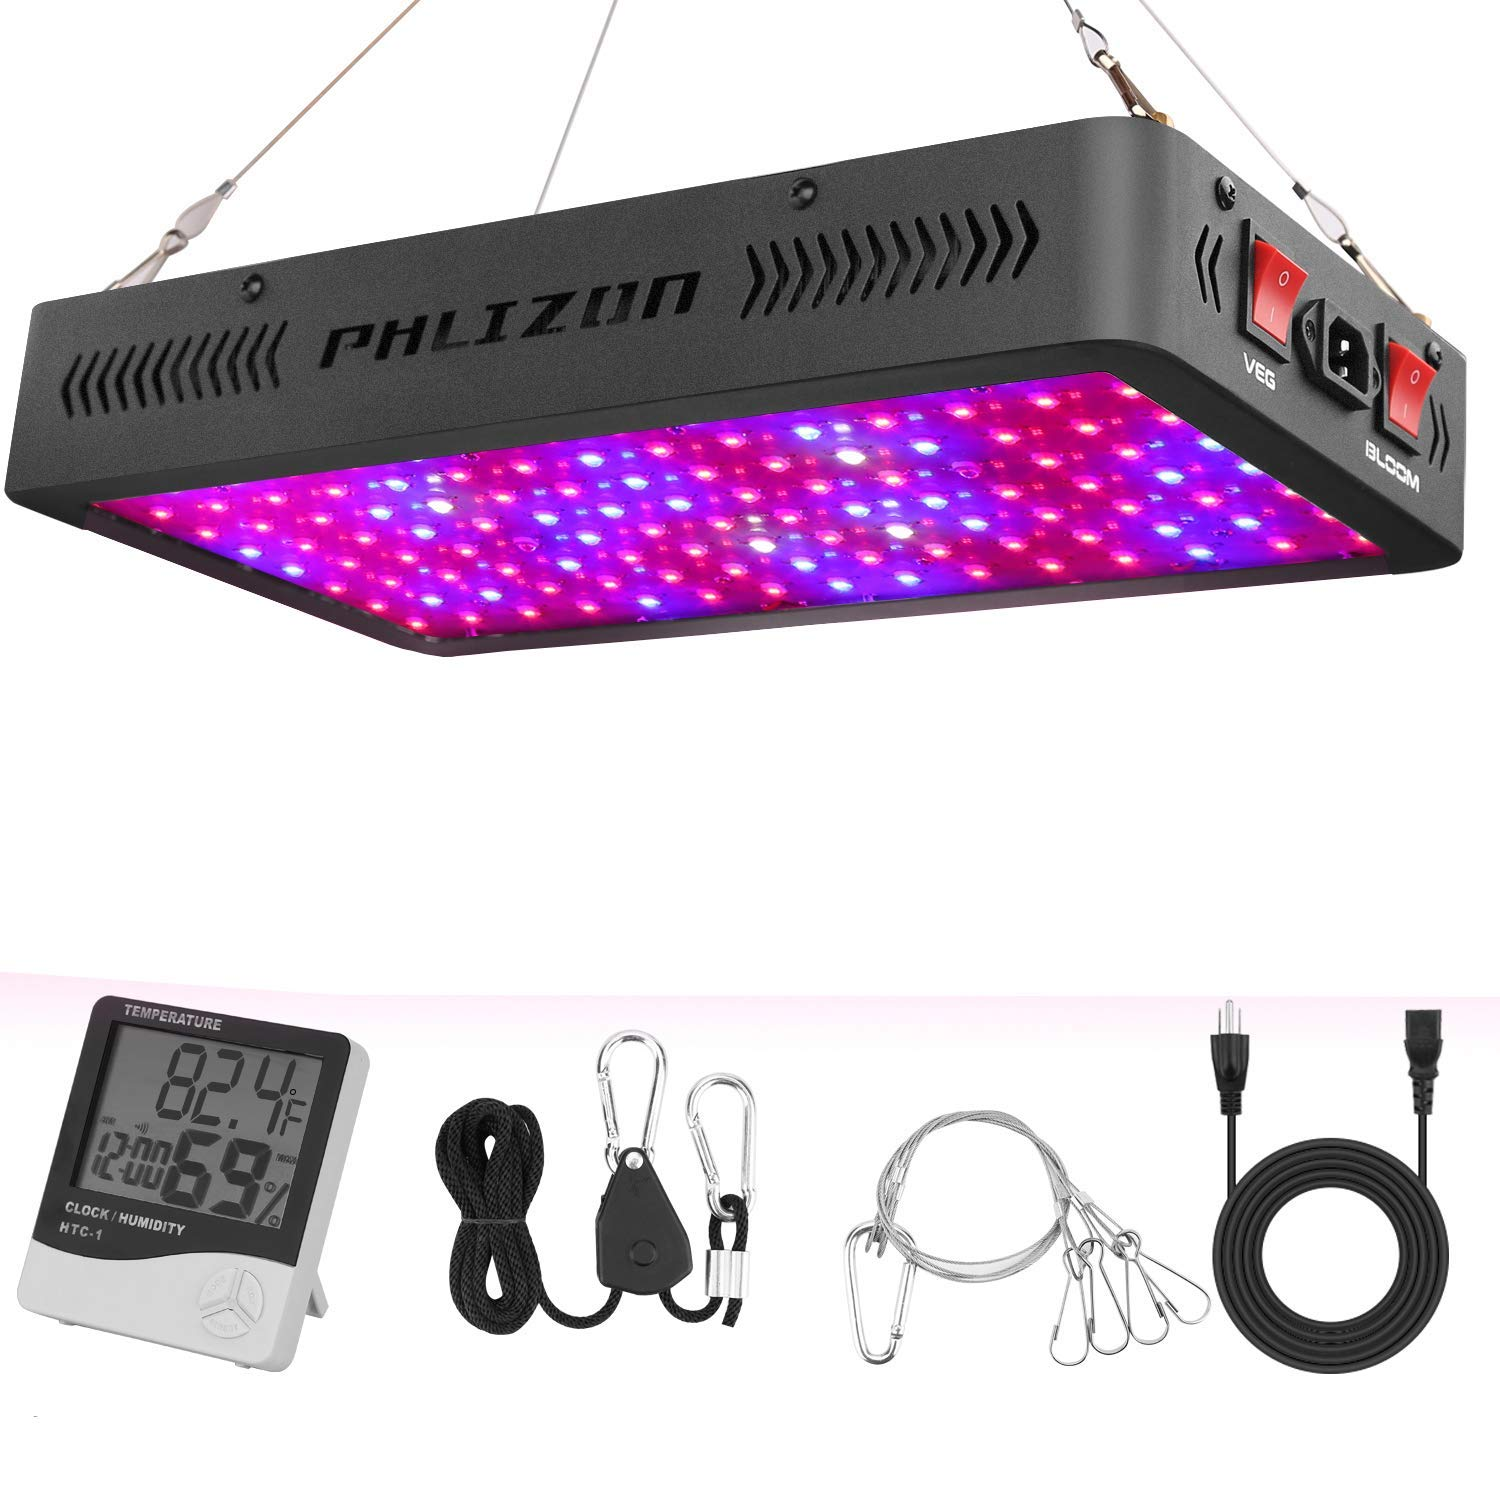 Phlizon Newest 1200w Led Grow Light Review Growyour420